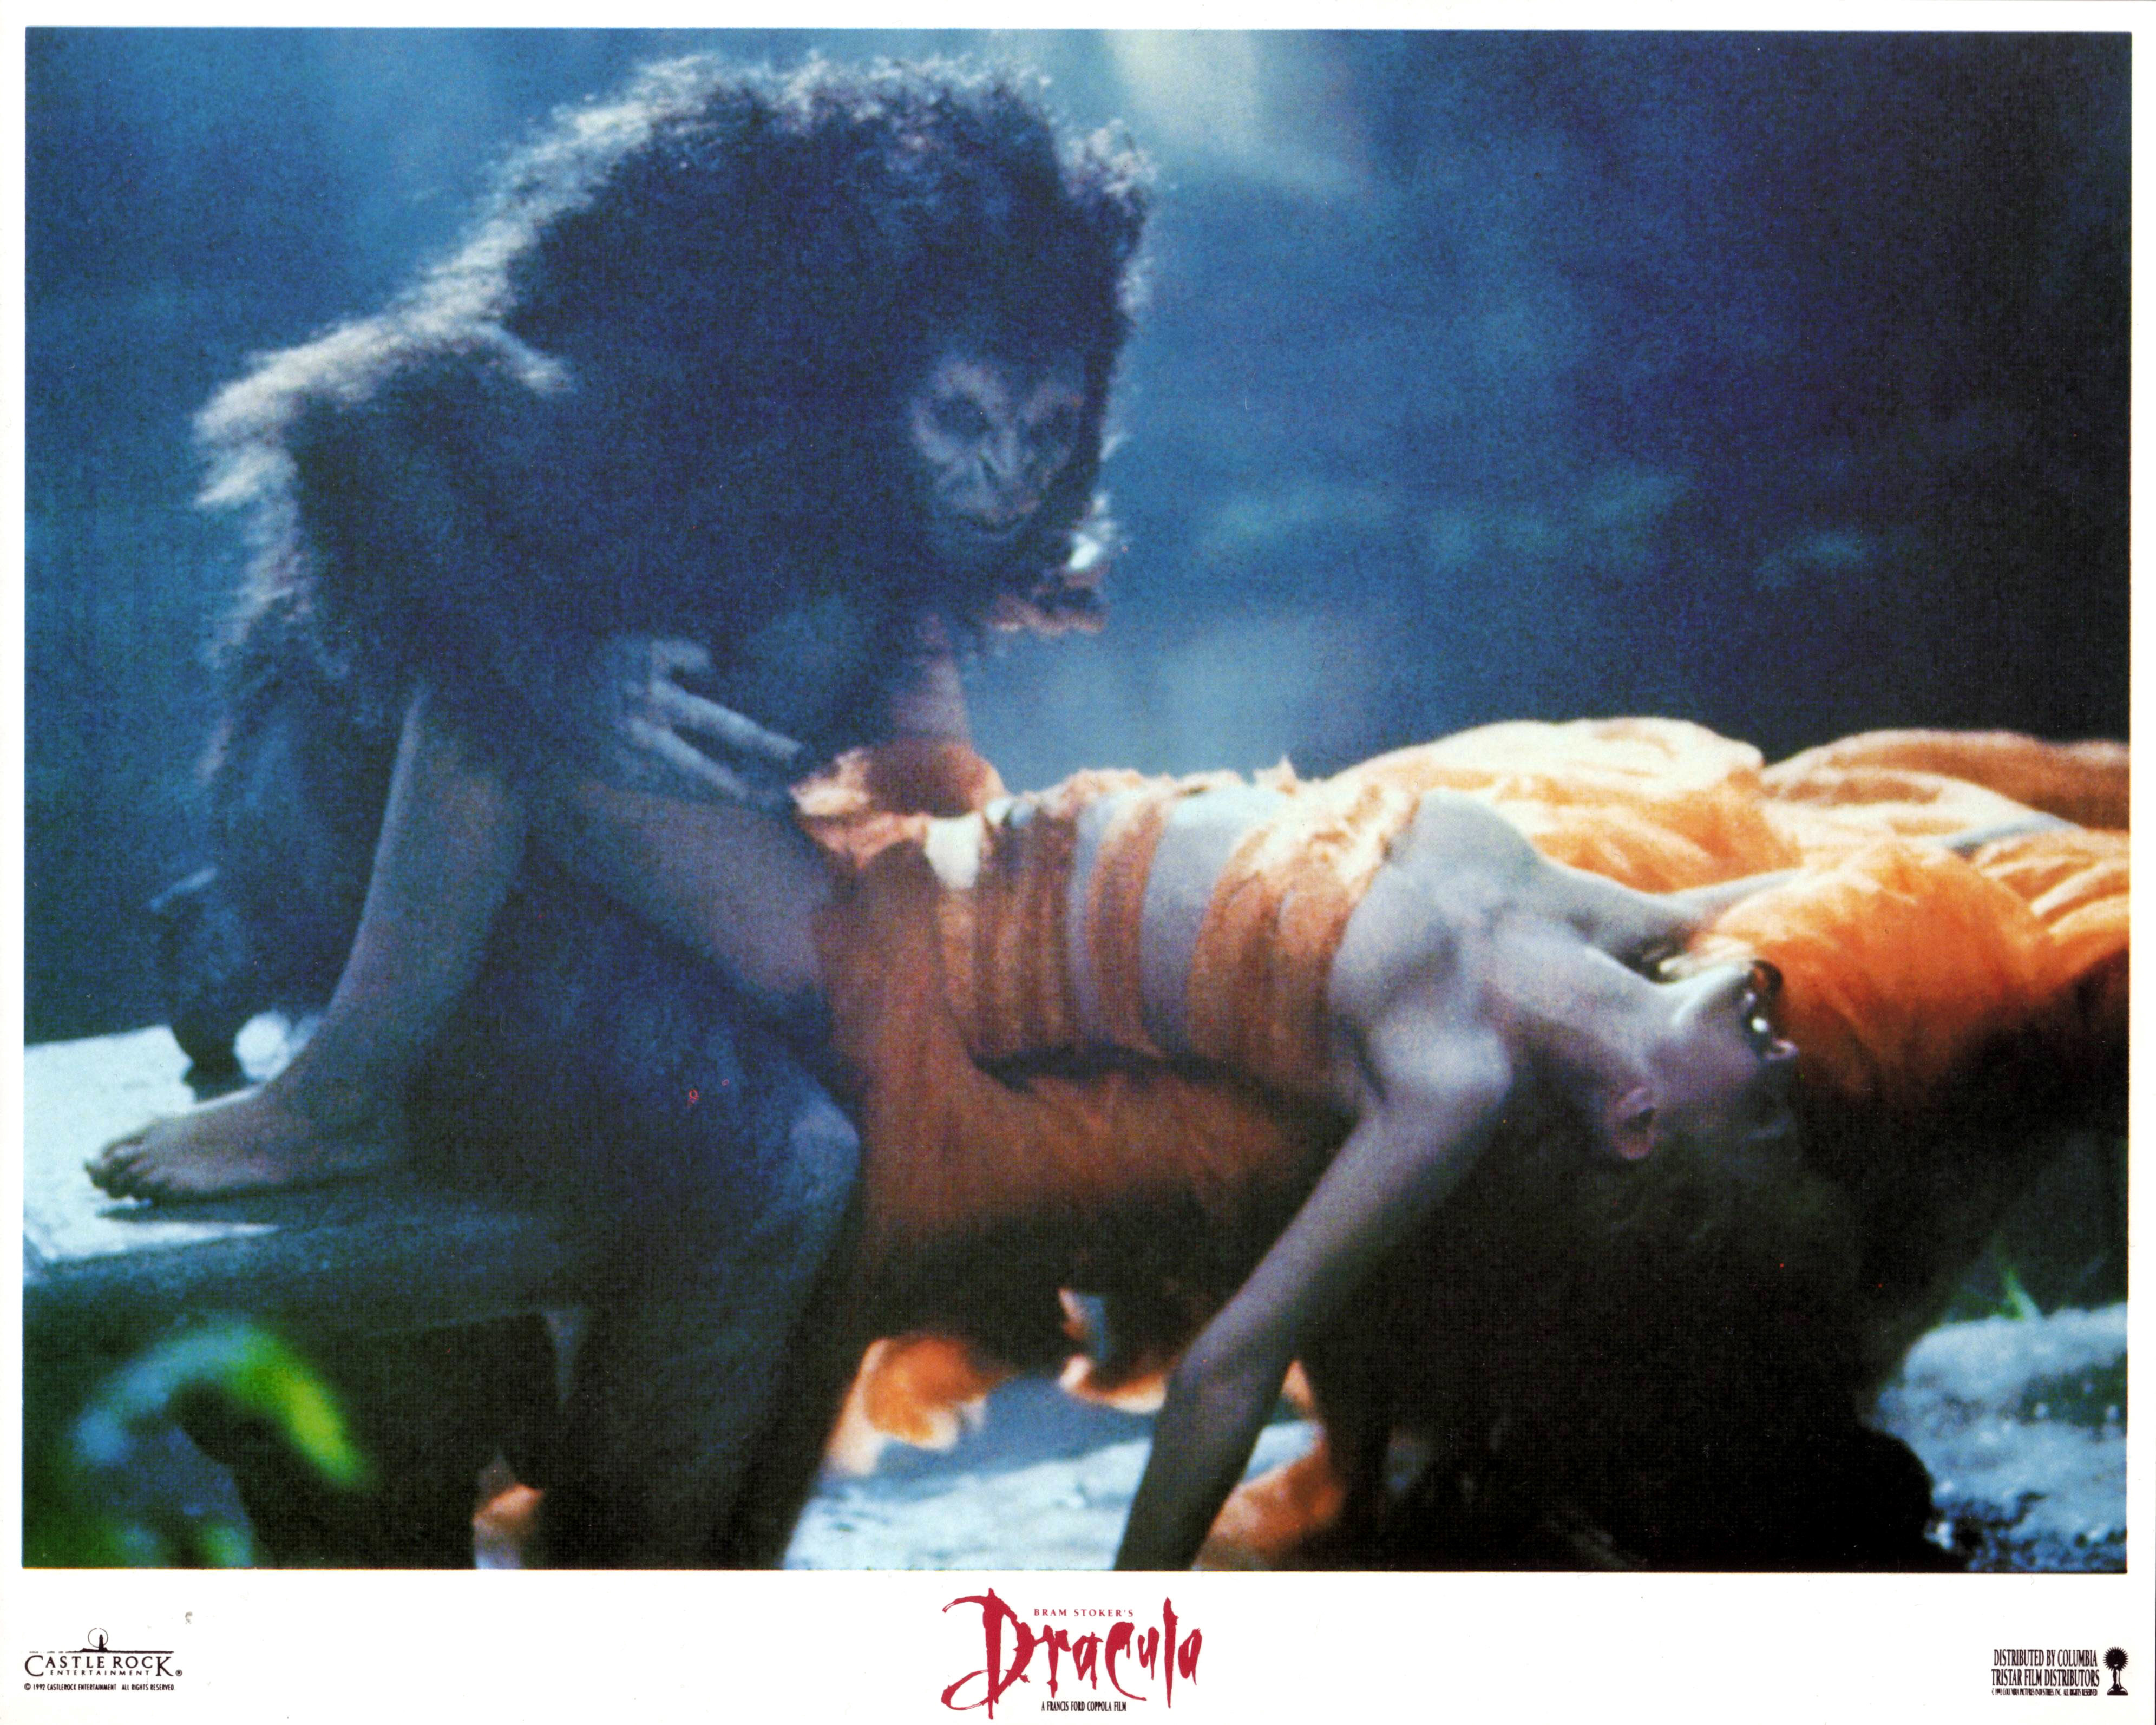 Image from Dracula showing Dracula in his wolf form mounting a scantily clad Frost